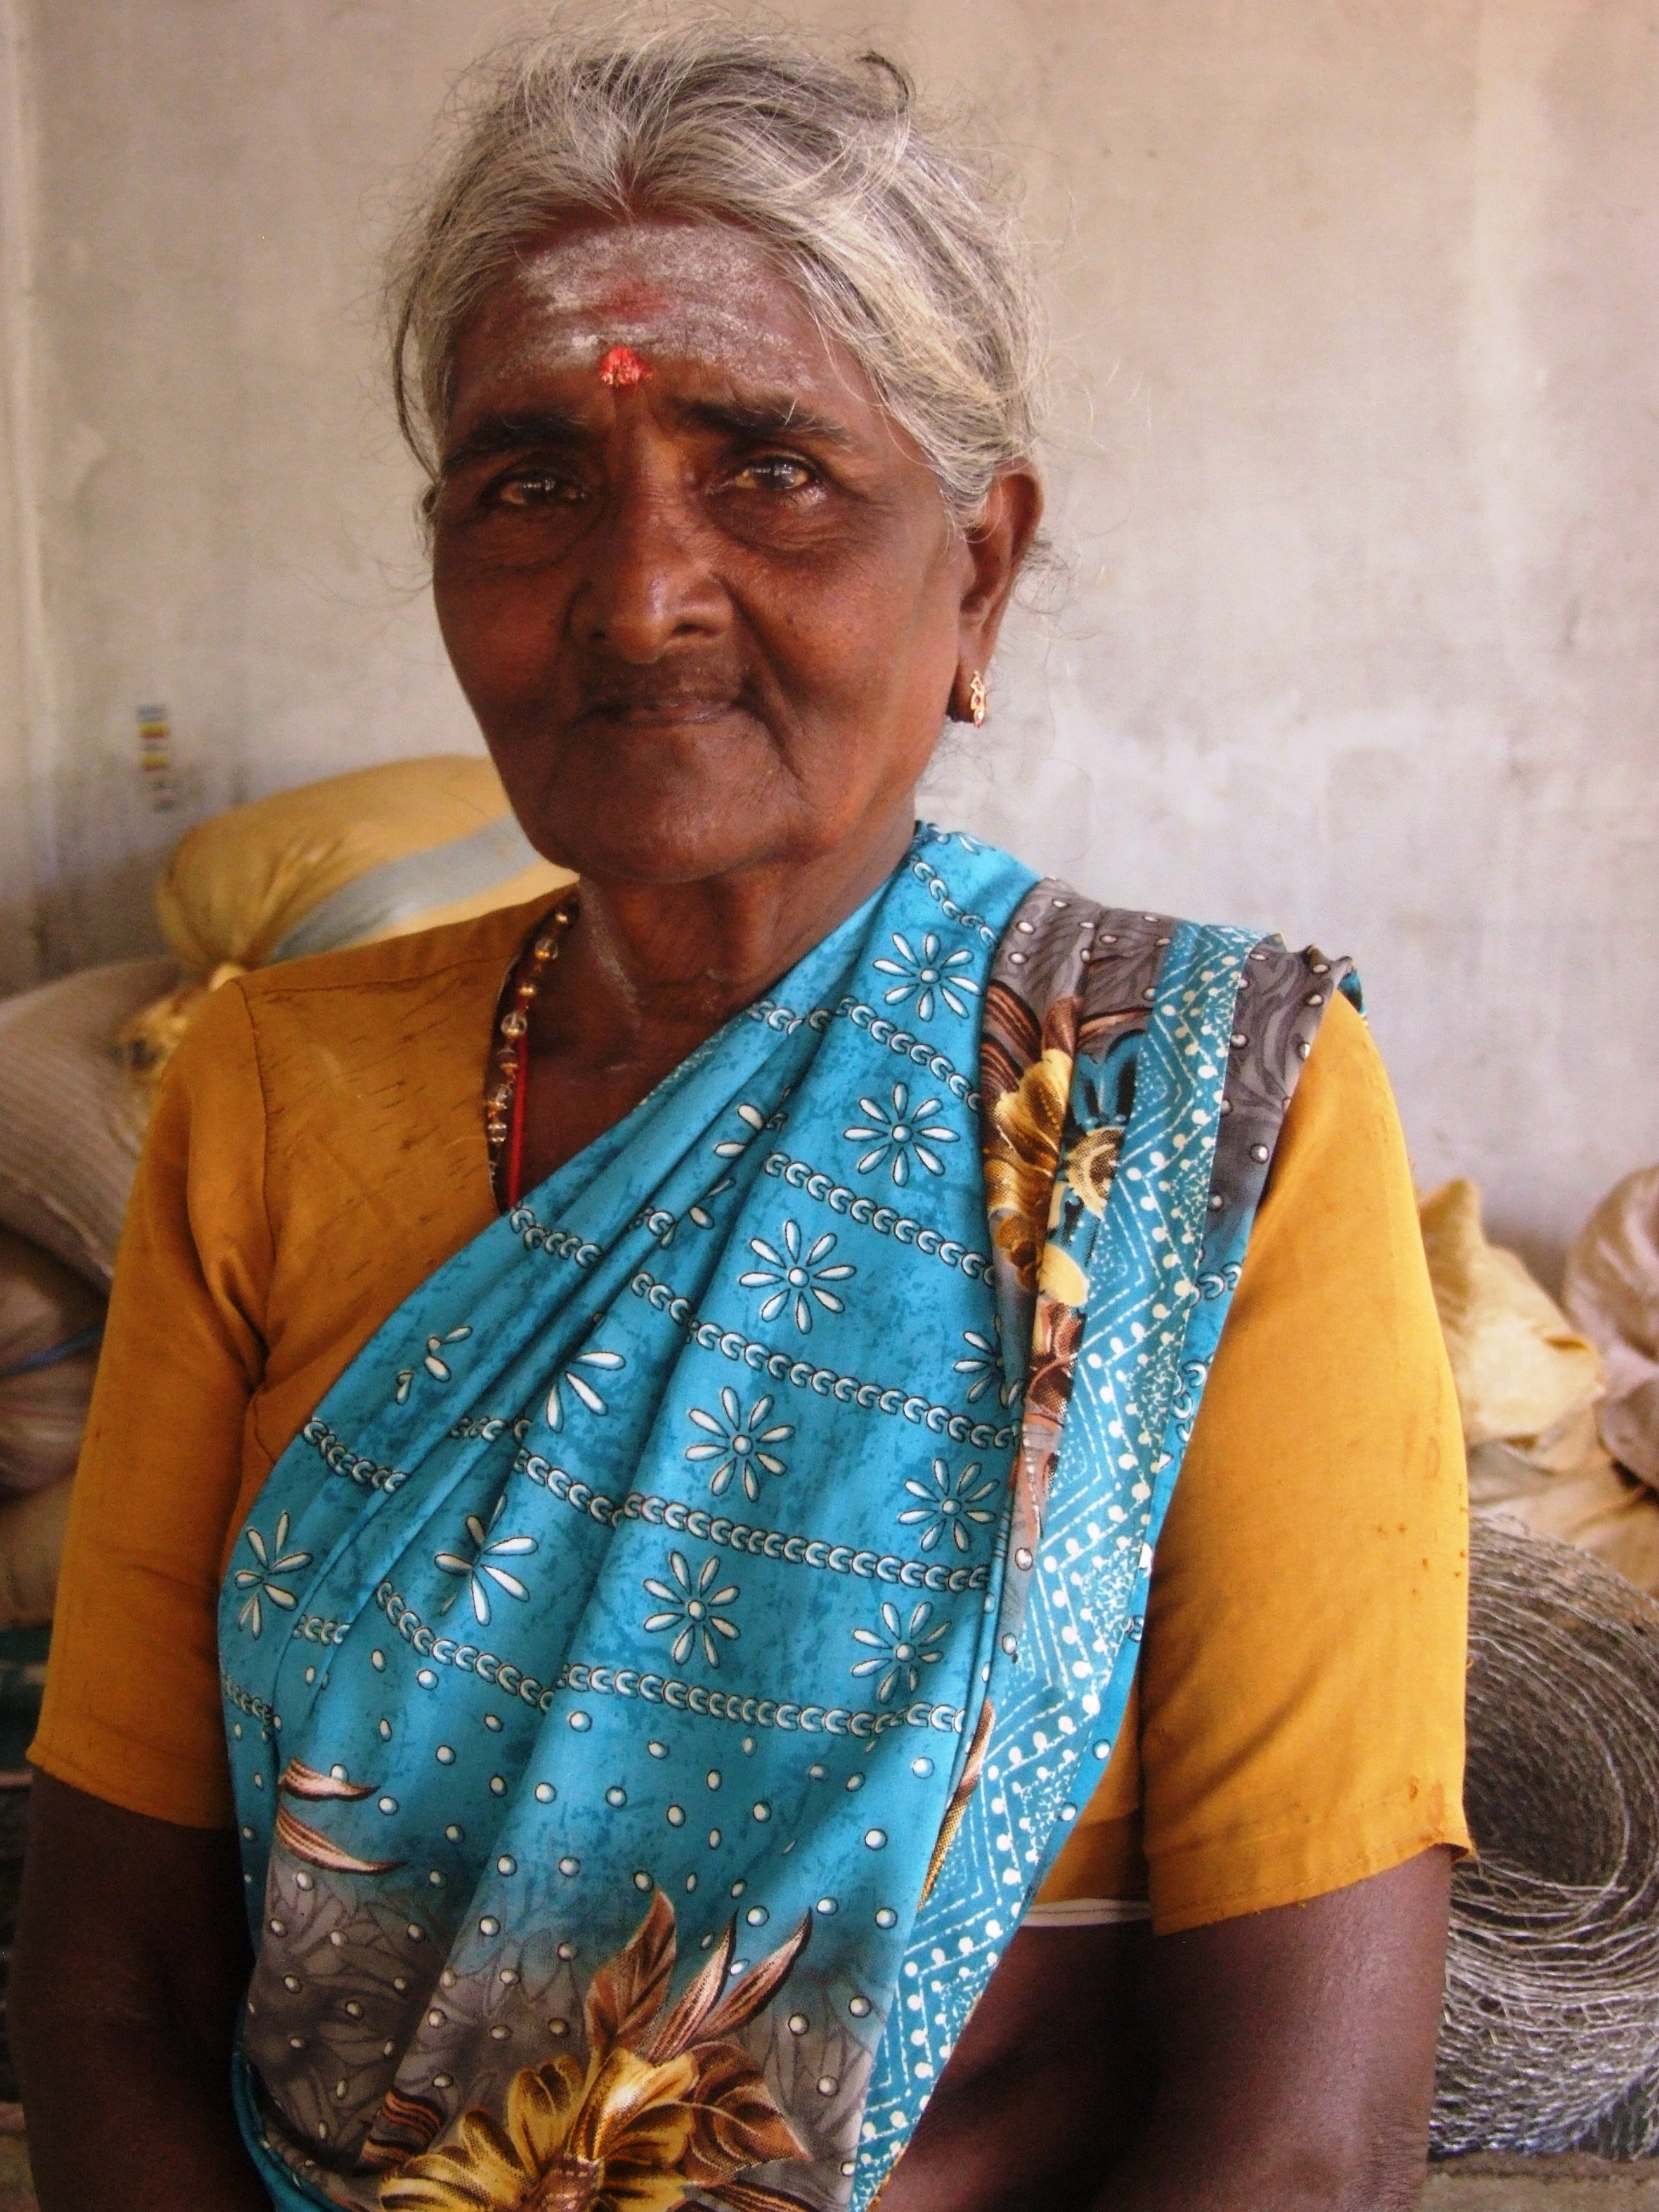 Kanthapillai Sarasvati, 67, is another returnee from Menik Farm, living with a host family in close proximity to the Seeniyamottai IDP village. Many residents are not being allowed to resettle on their land given an army presence in the area